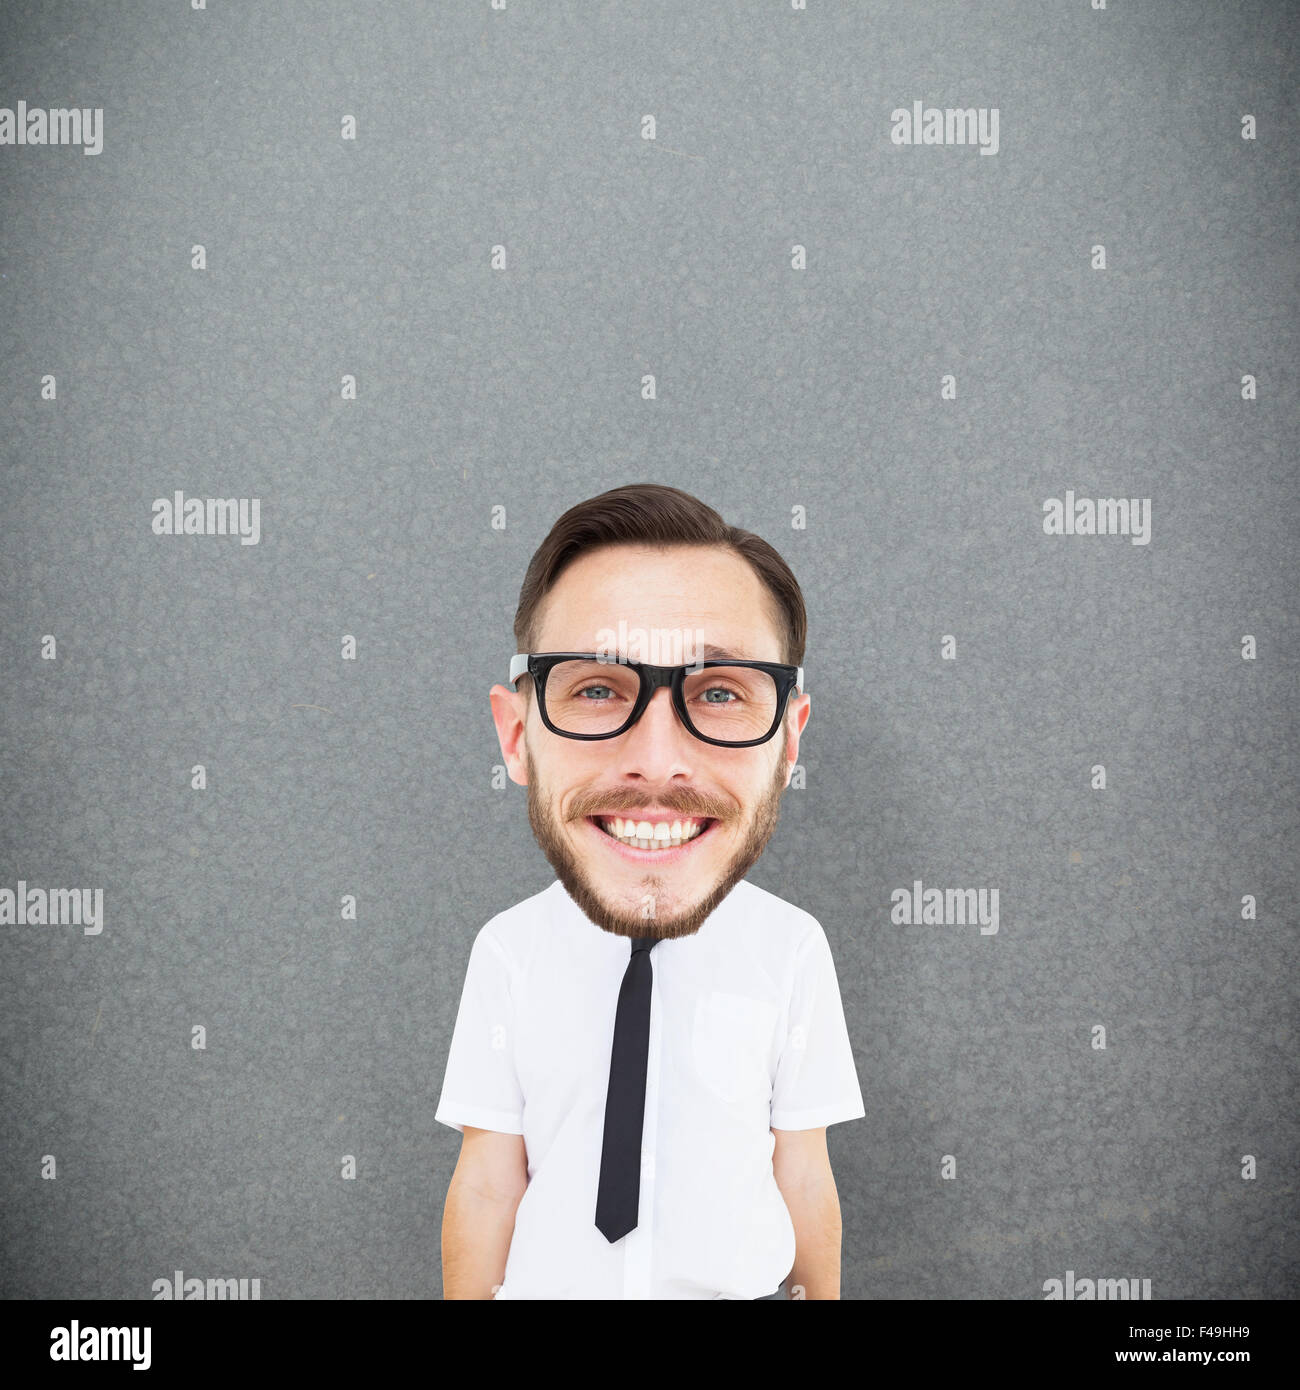 Composite image of geeky businessman Stock Photo